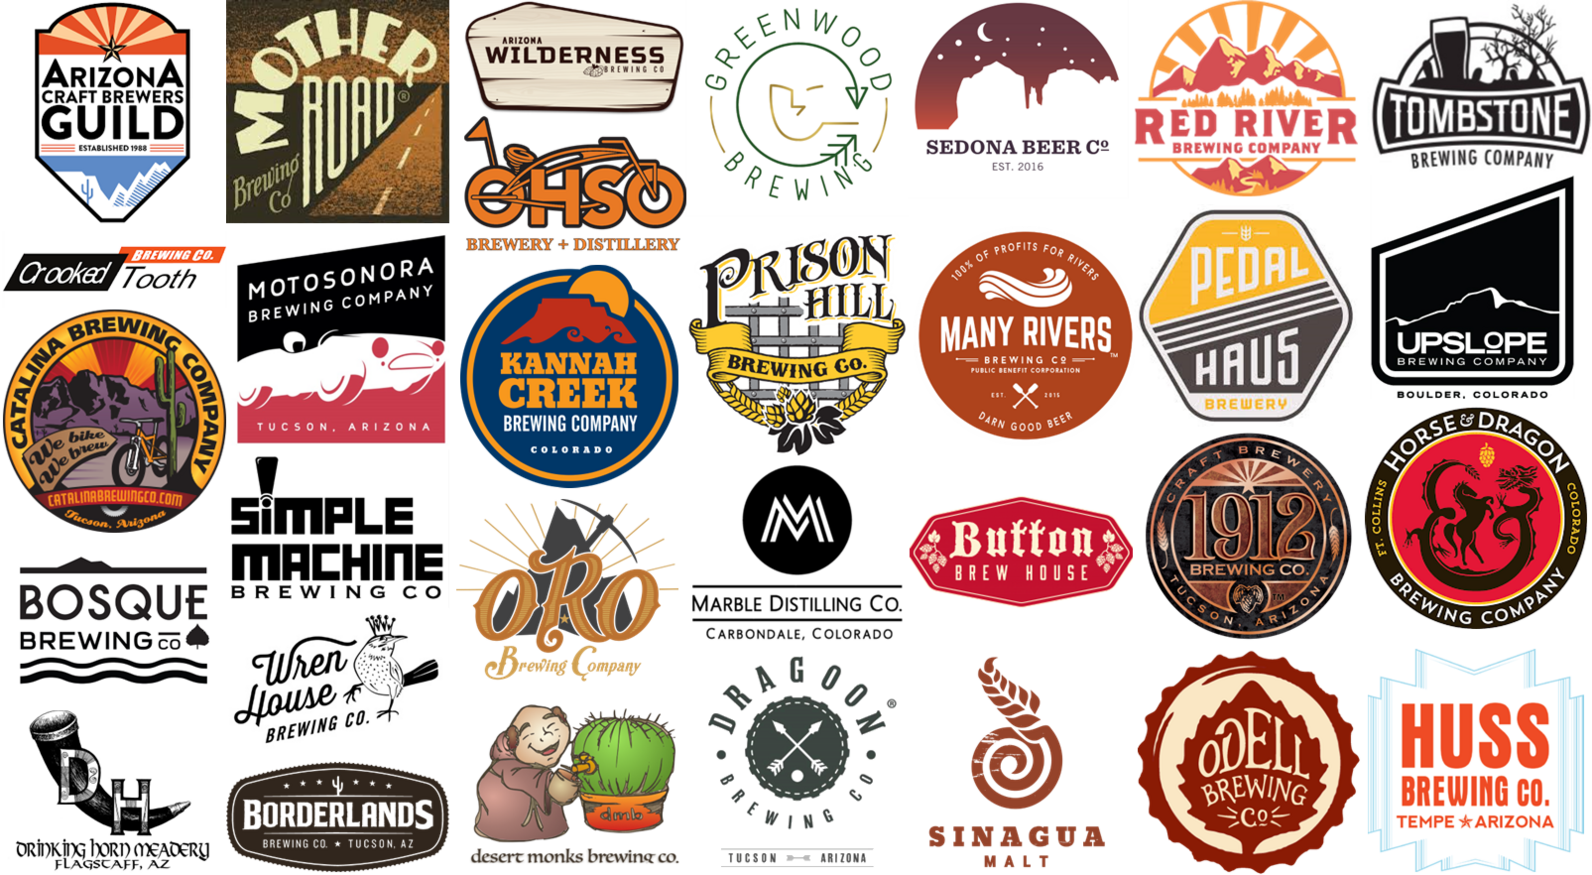 Western Rivers Brewers' Council member logos